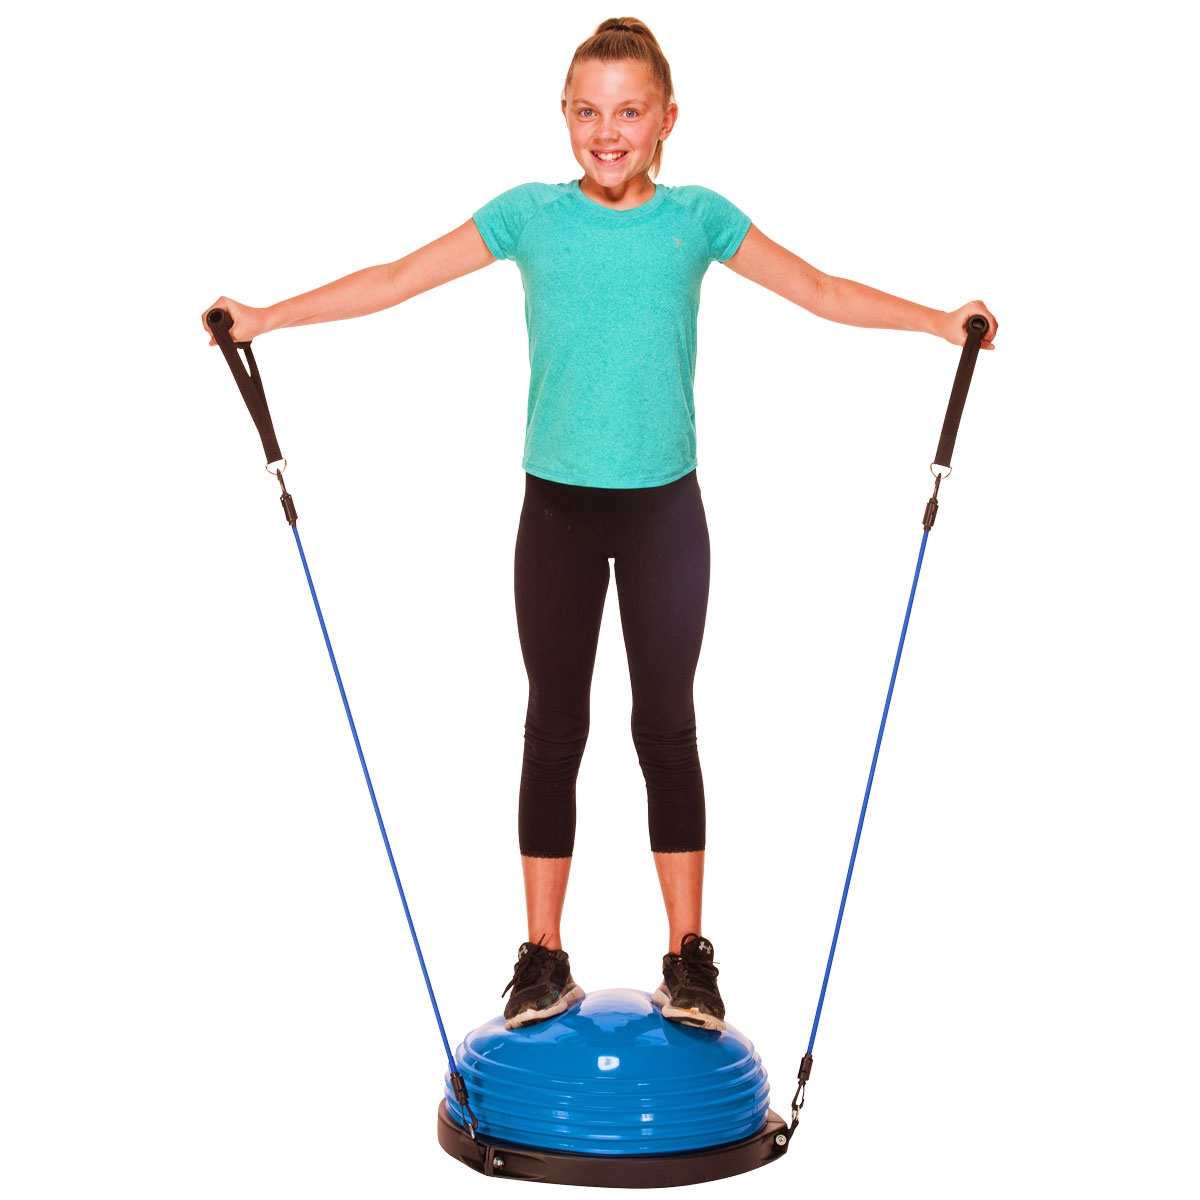 girl doing shoulder exercises on blue balance dome trainer with arm straps